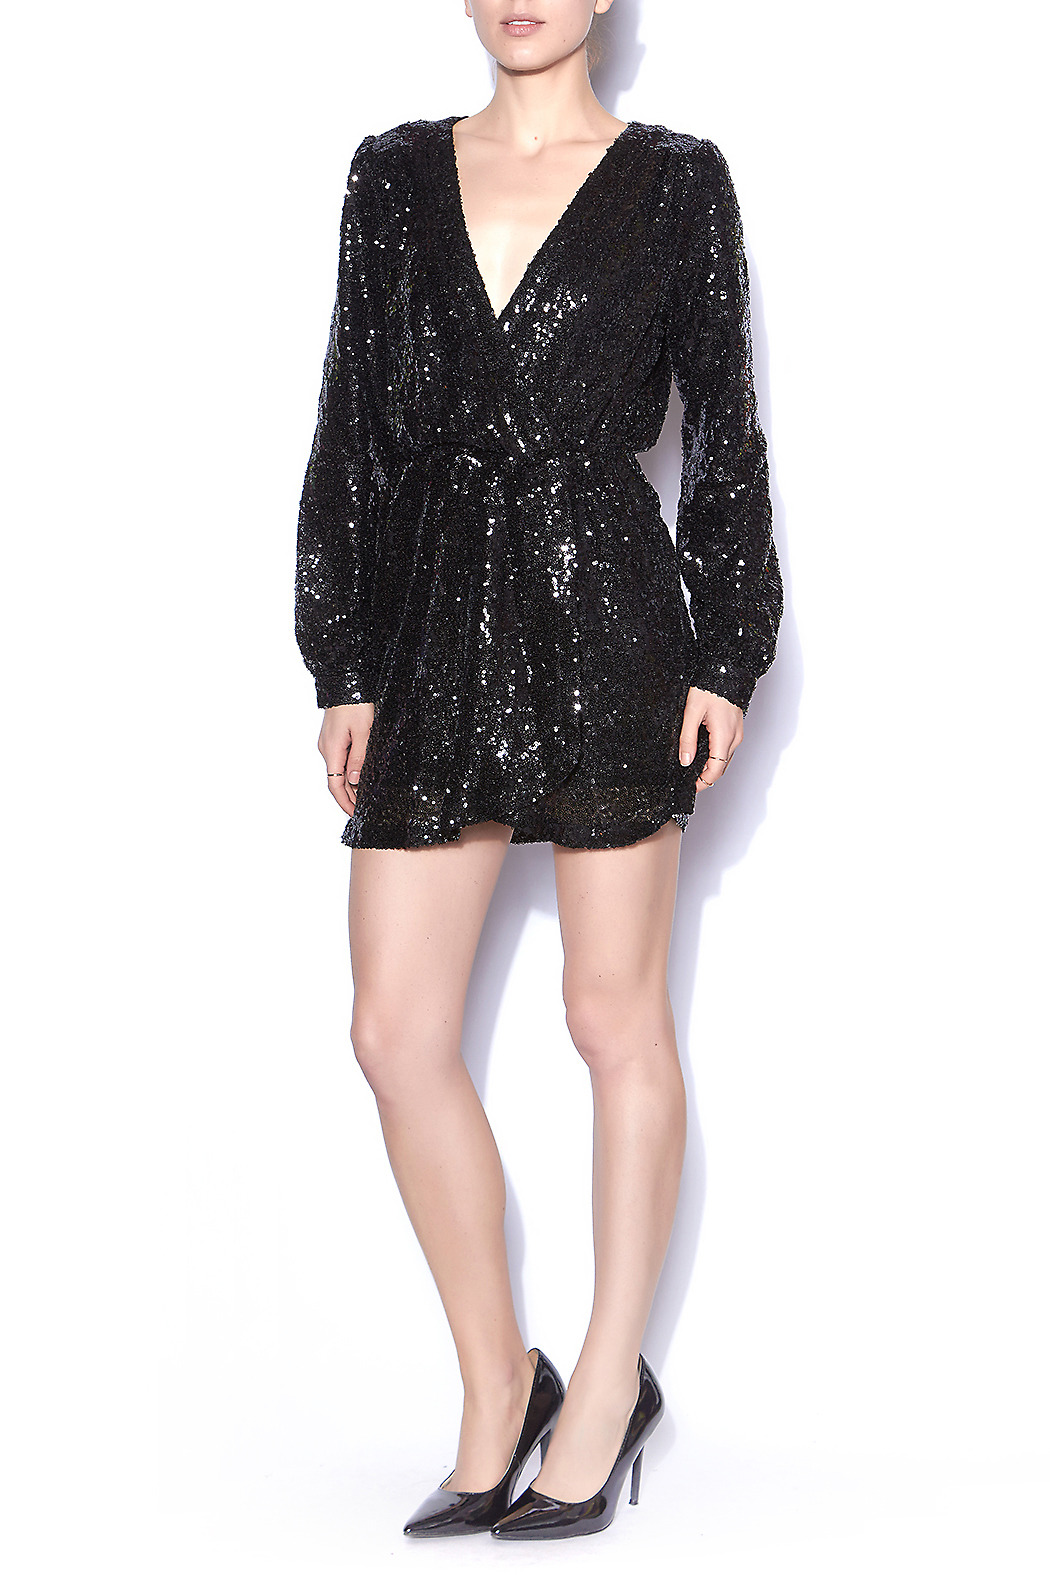 Honey Punch Black Sequin Wrap Dress from Mississippi by LipChic ...